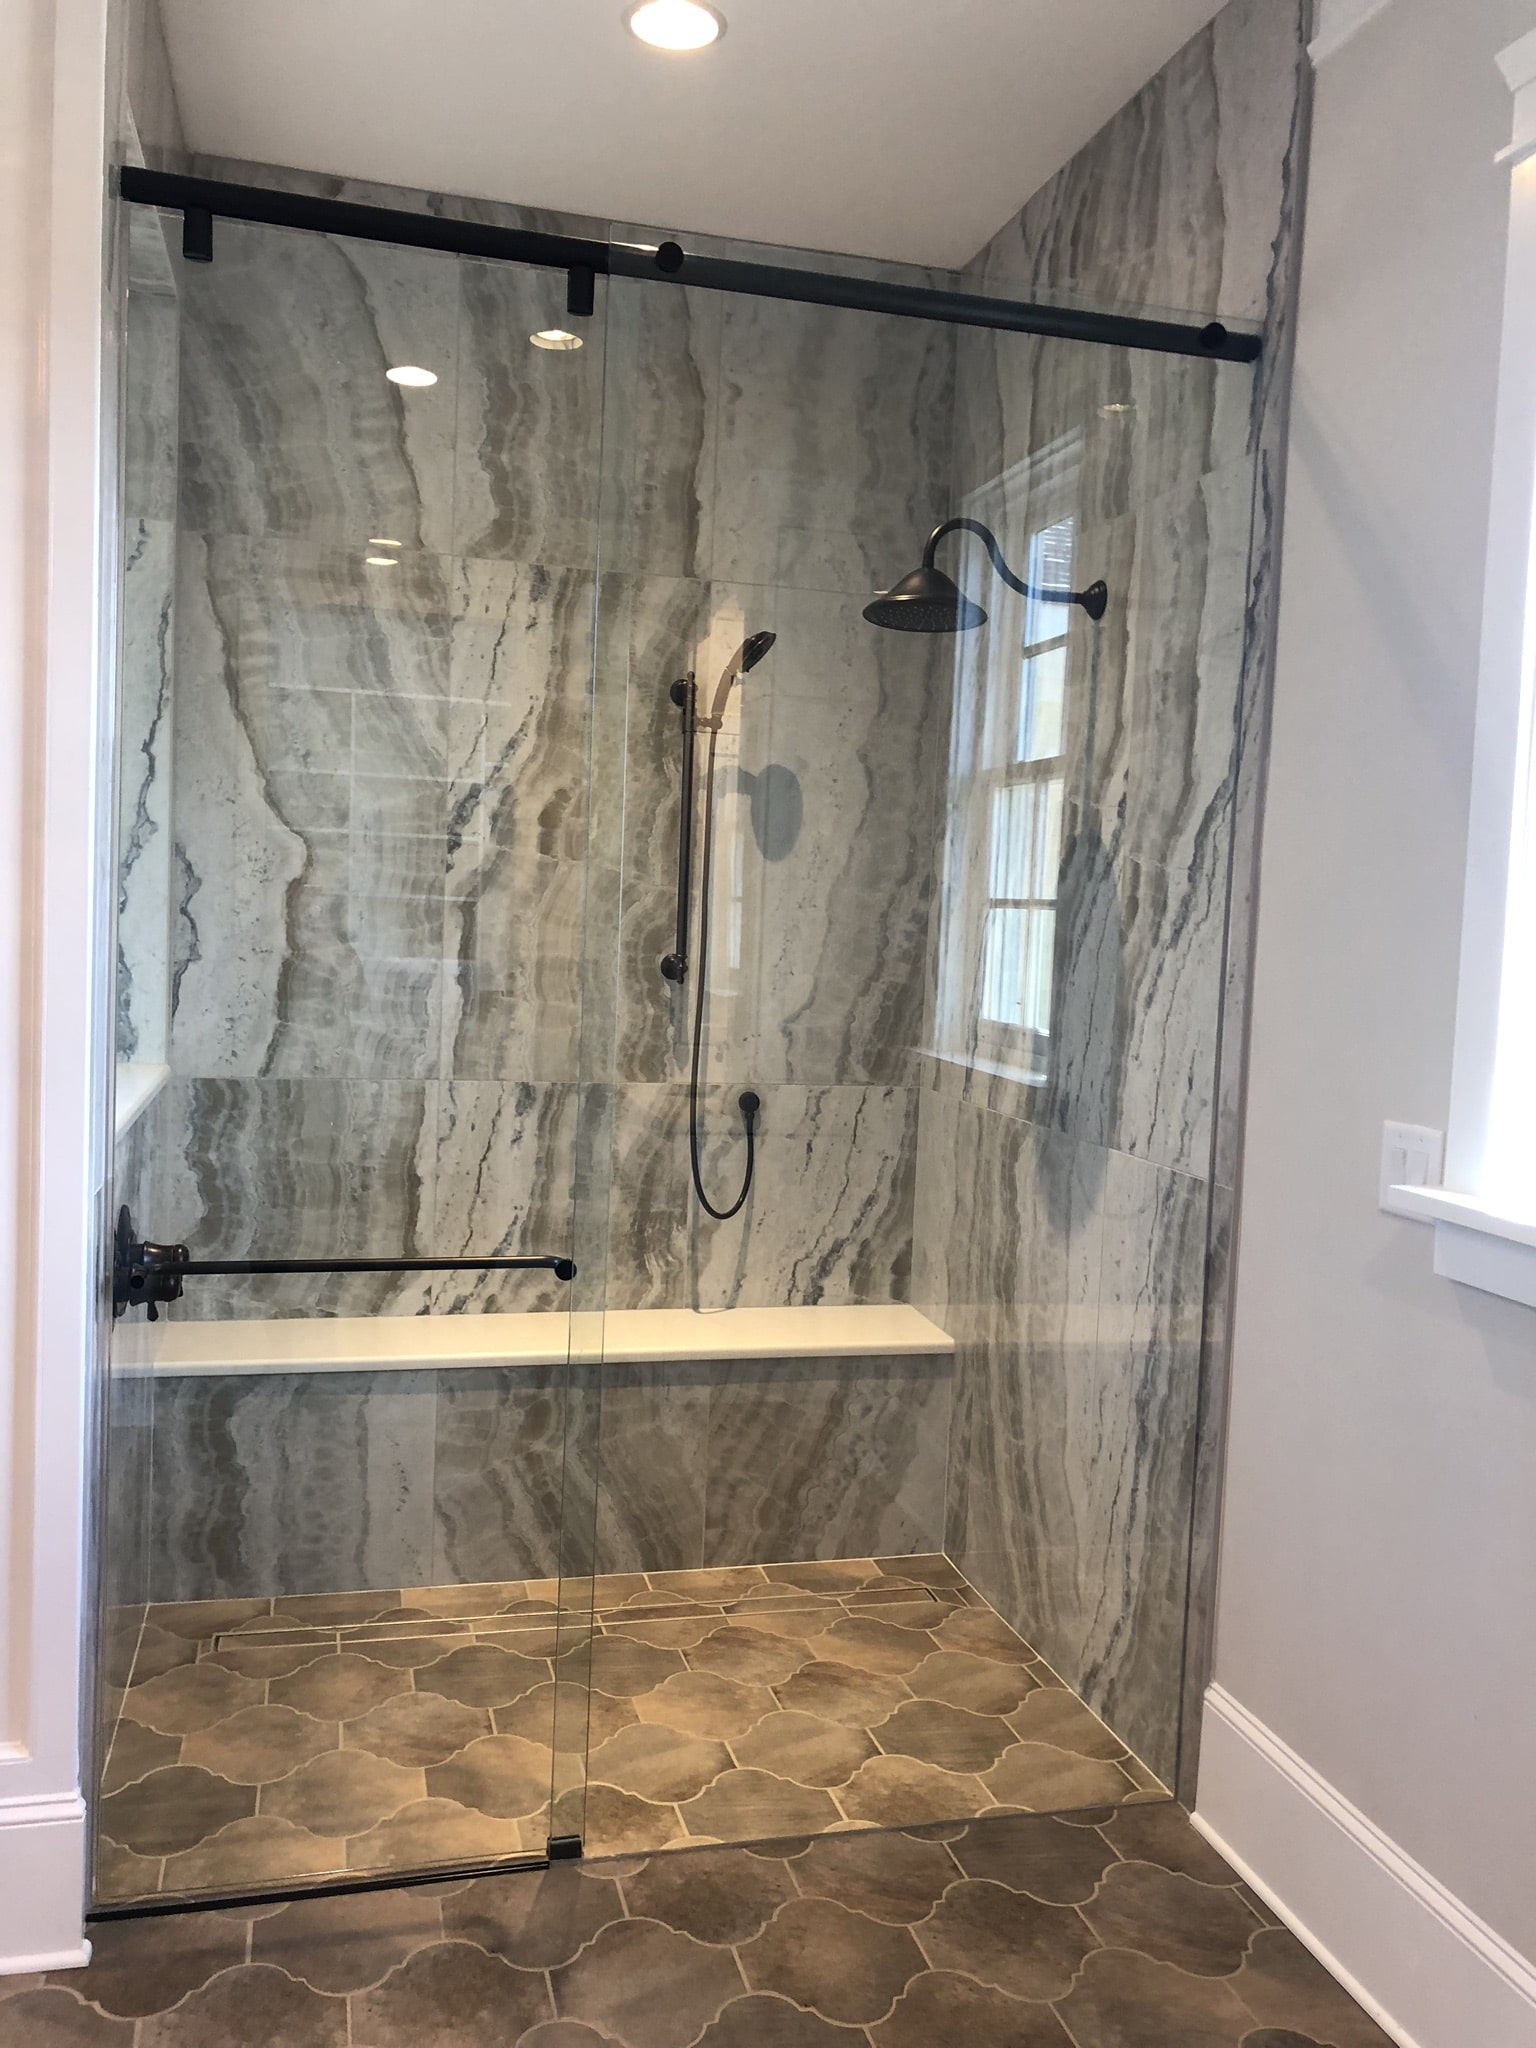 Zero entry shower in master bath with beautiful, large wall tile and sliding glass enclosure.  The custom linear drain was filled in with tile to provide a seamless look.